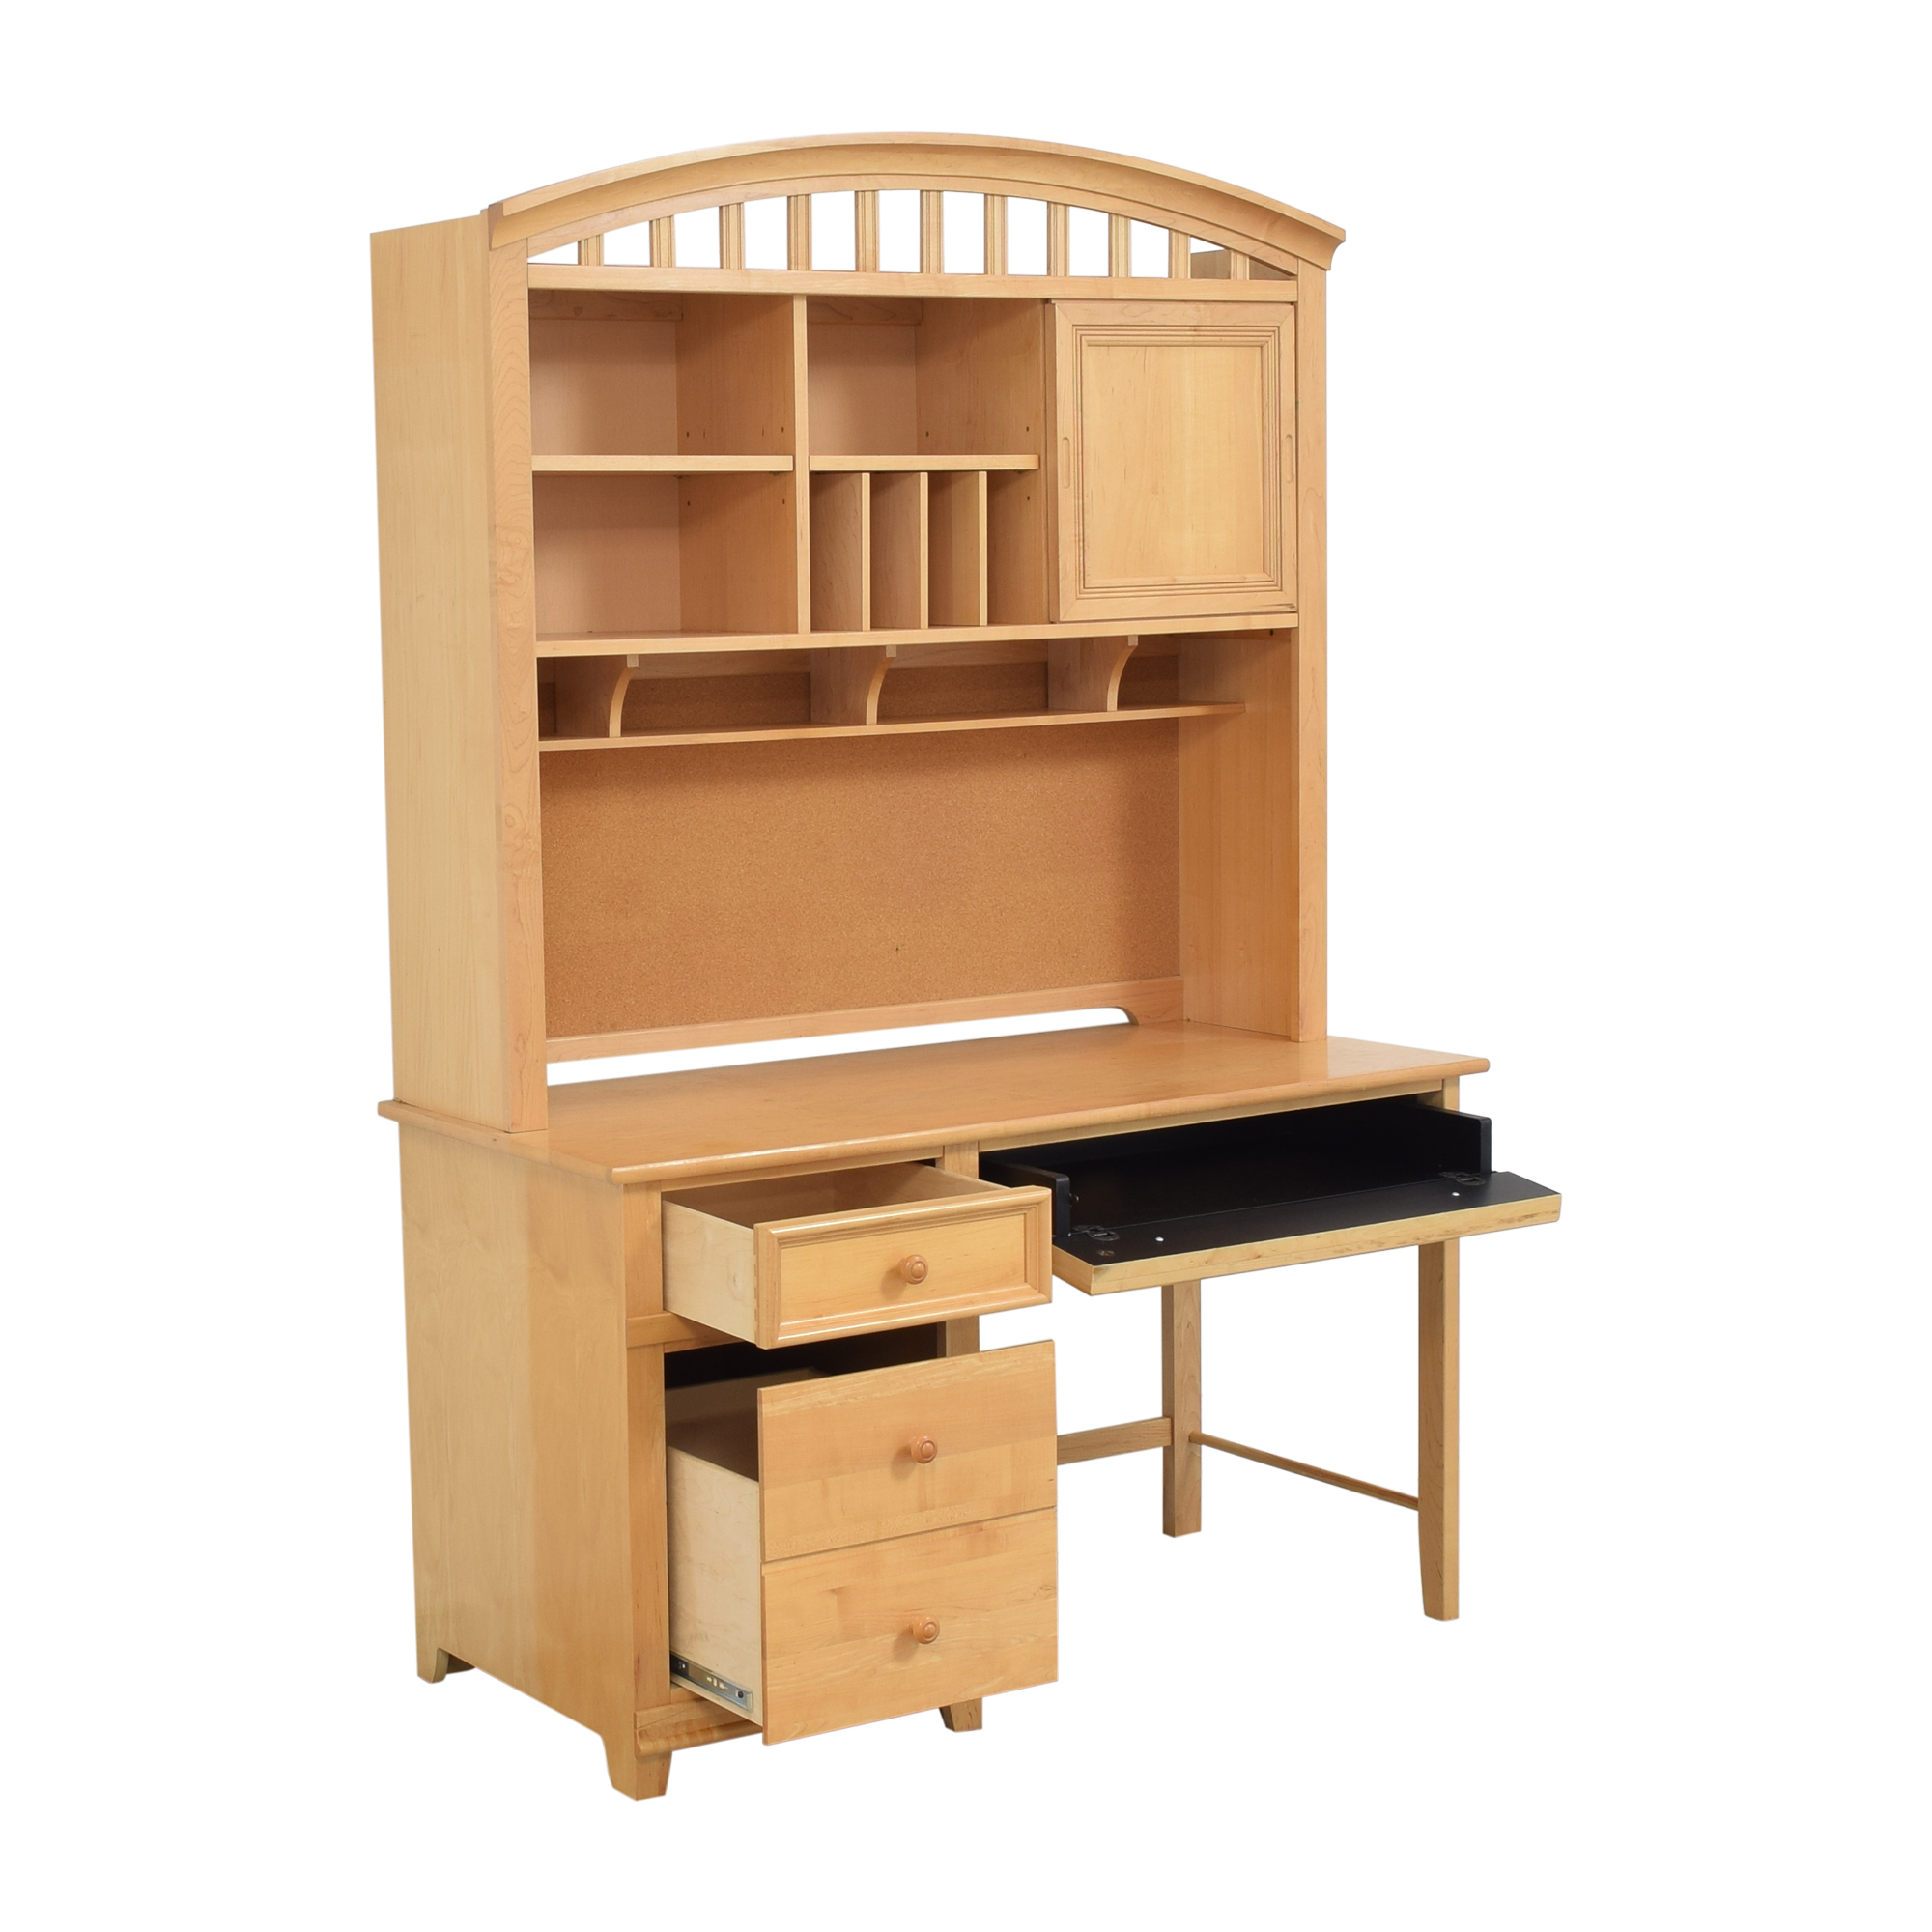 Stanley Furniture Stanley Furniture Young America Desk with Hutch nj